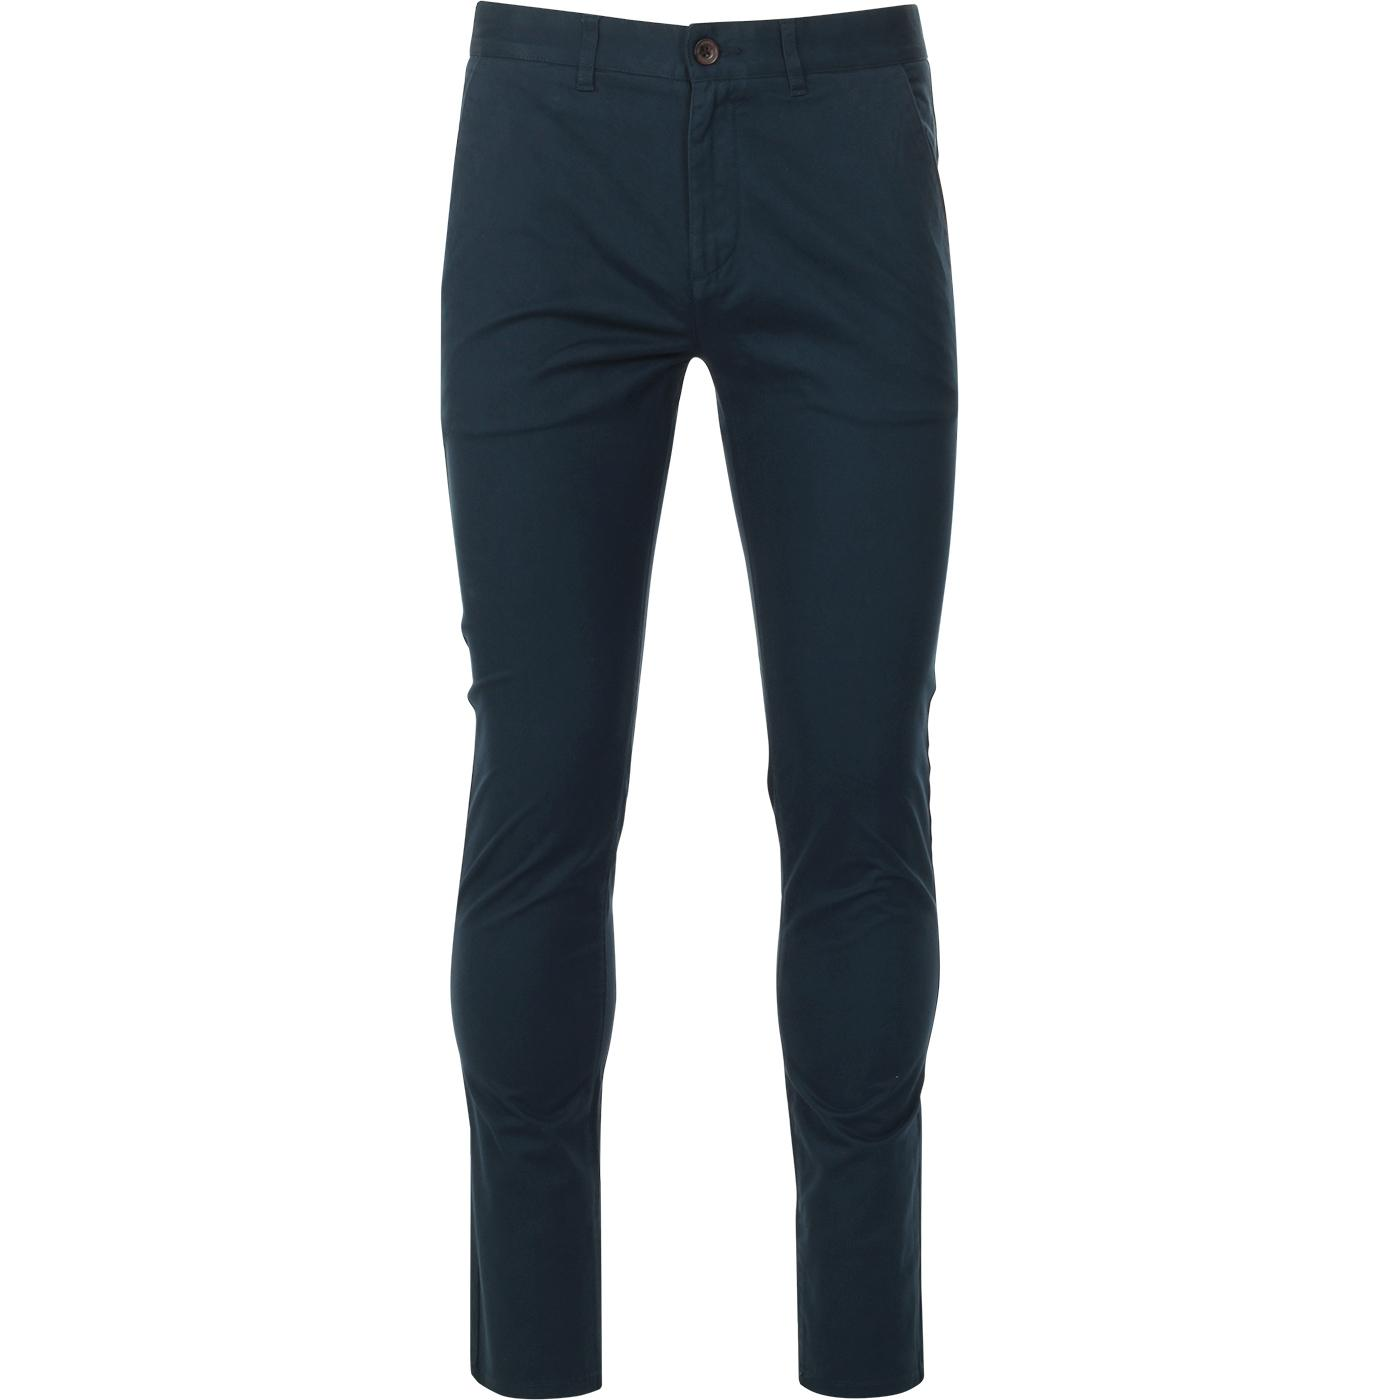 Drake FARAH Retro Mod Twill Chino Trousers (Teal)